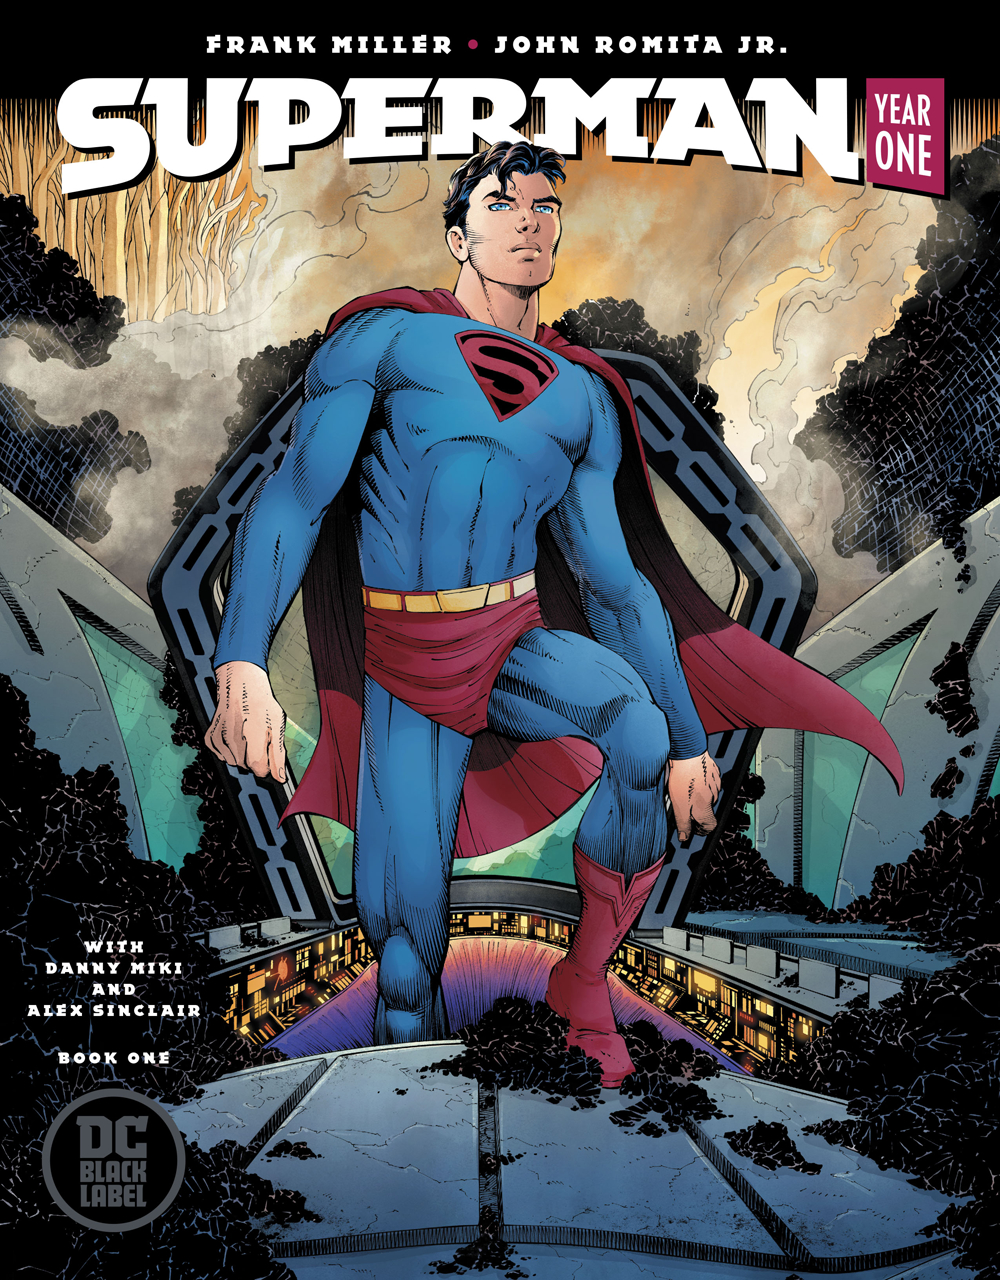 SUPERMAN YEAR ONE #1 (OF 3) ROMITA COVER (MR)